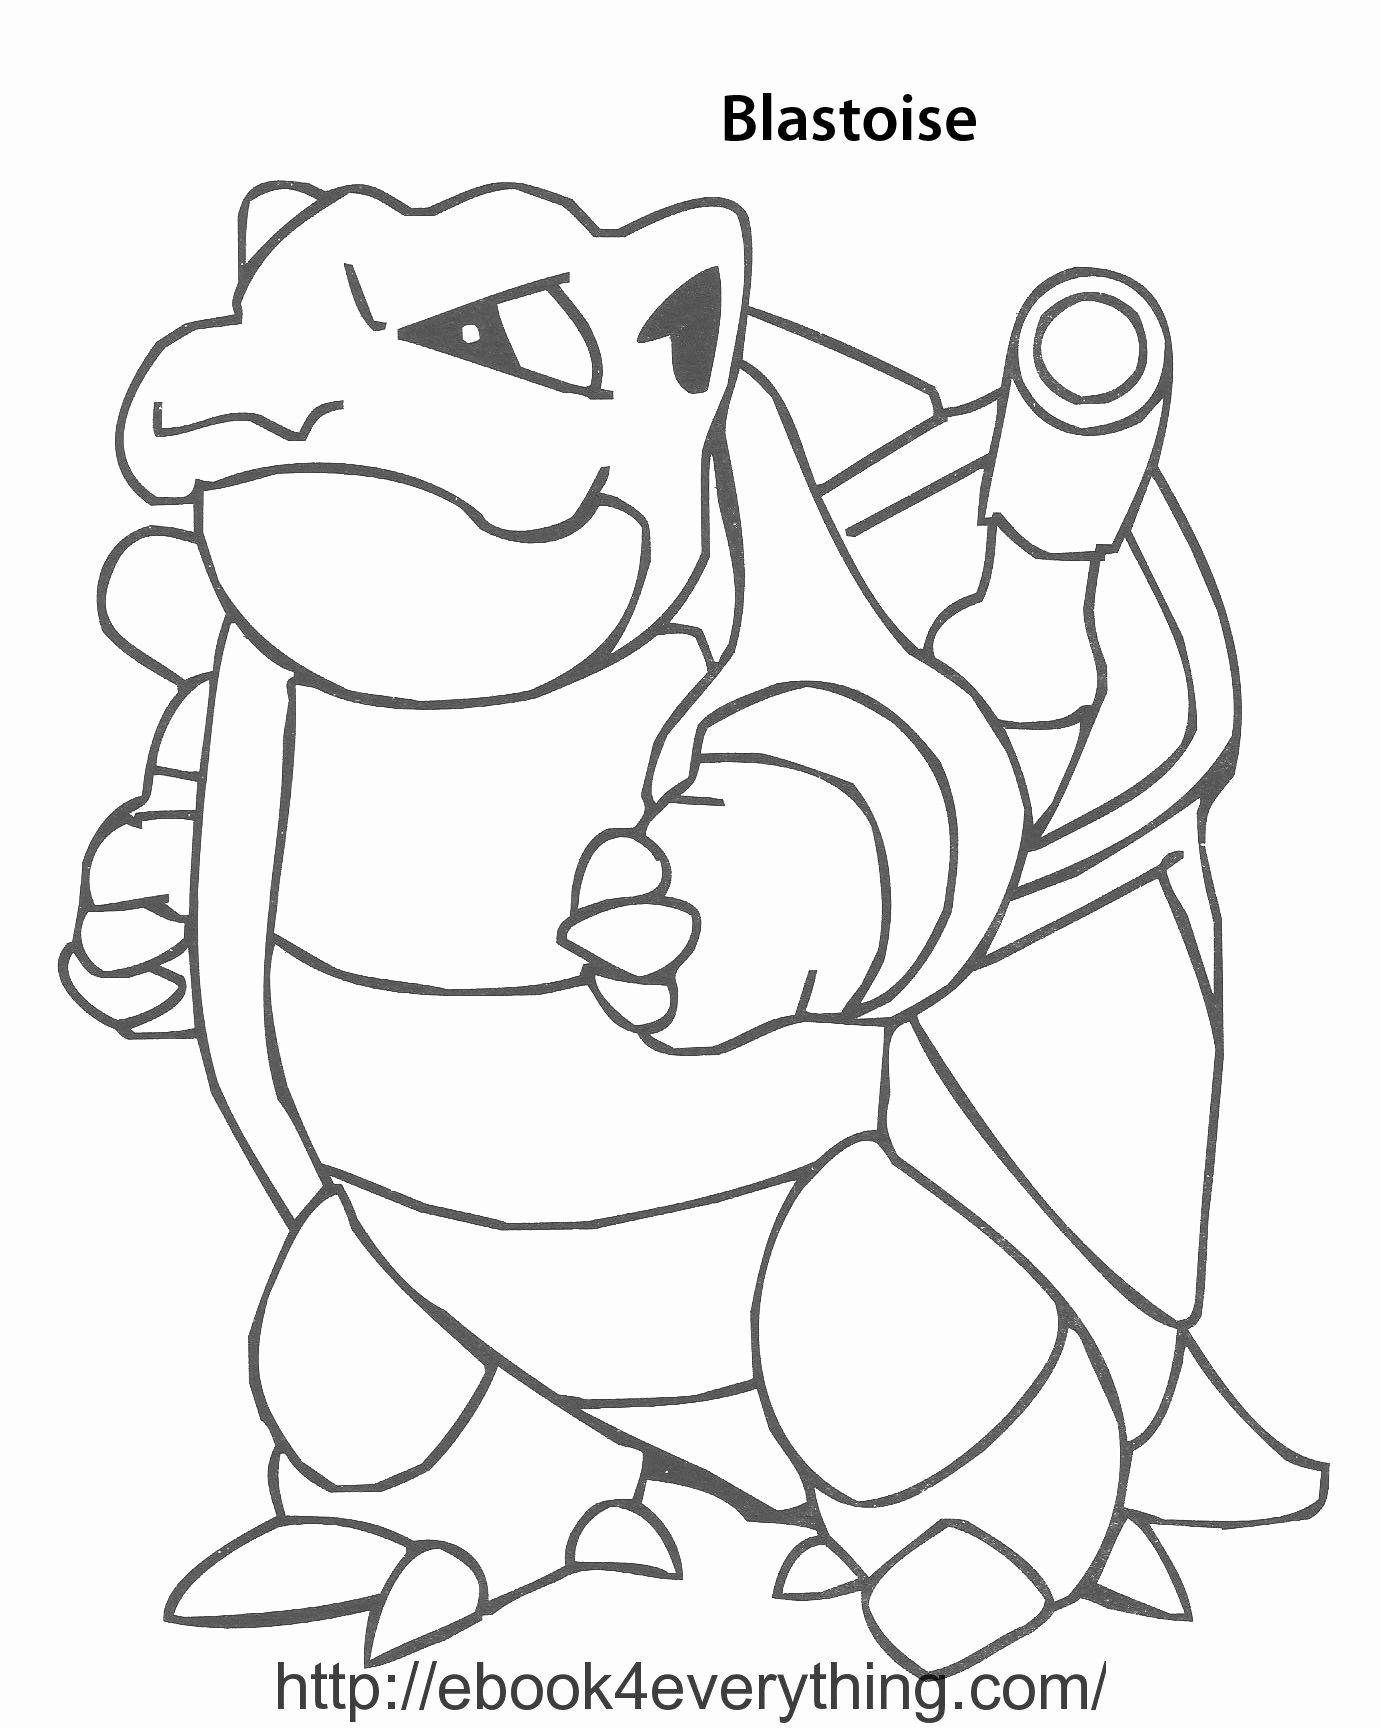 Mega Blastoise Coloring Page Inspirational How To Draw Mega Blastoise Y In 2020 Pokemon Coloring Pokemon Coloring Pages Animal Coloring Pages